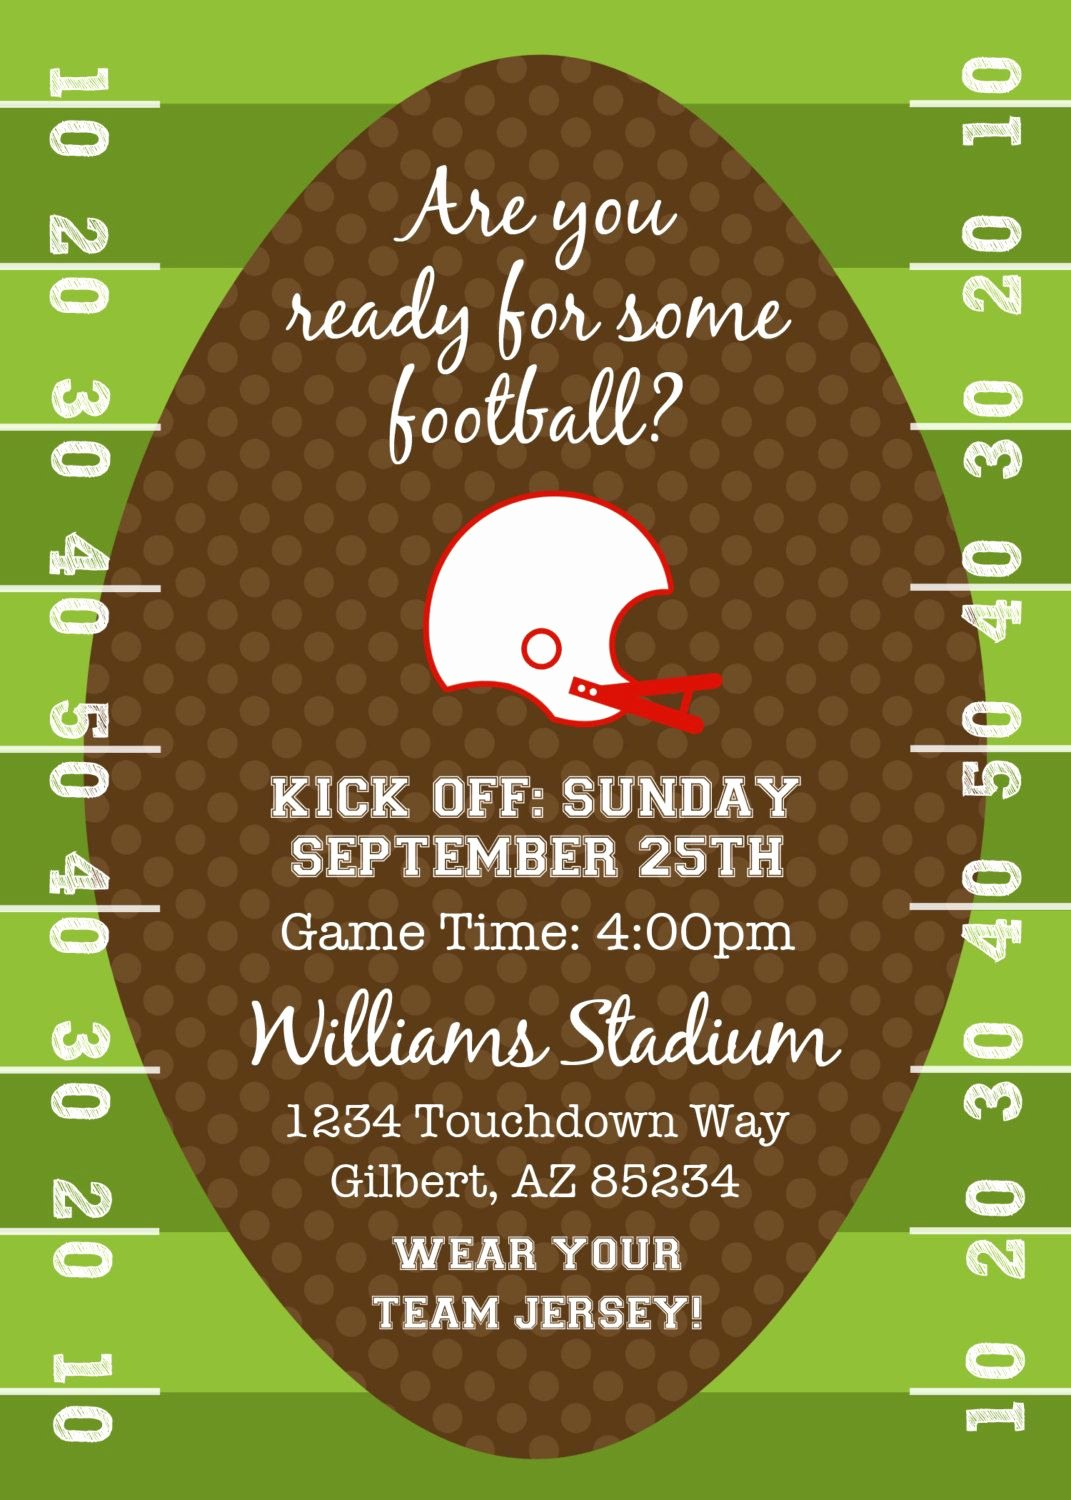 Tailgate Party Invitation Template Luxury Football or Tailgating Birthday Party or Shower